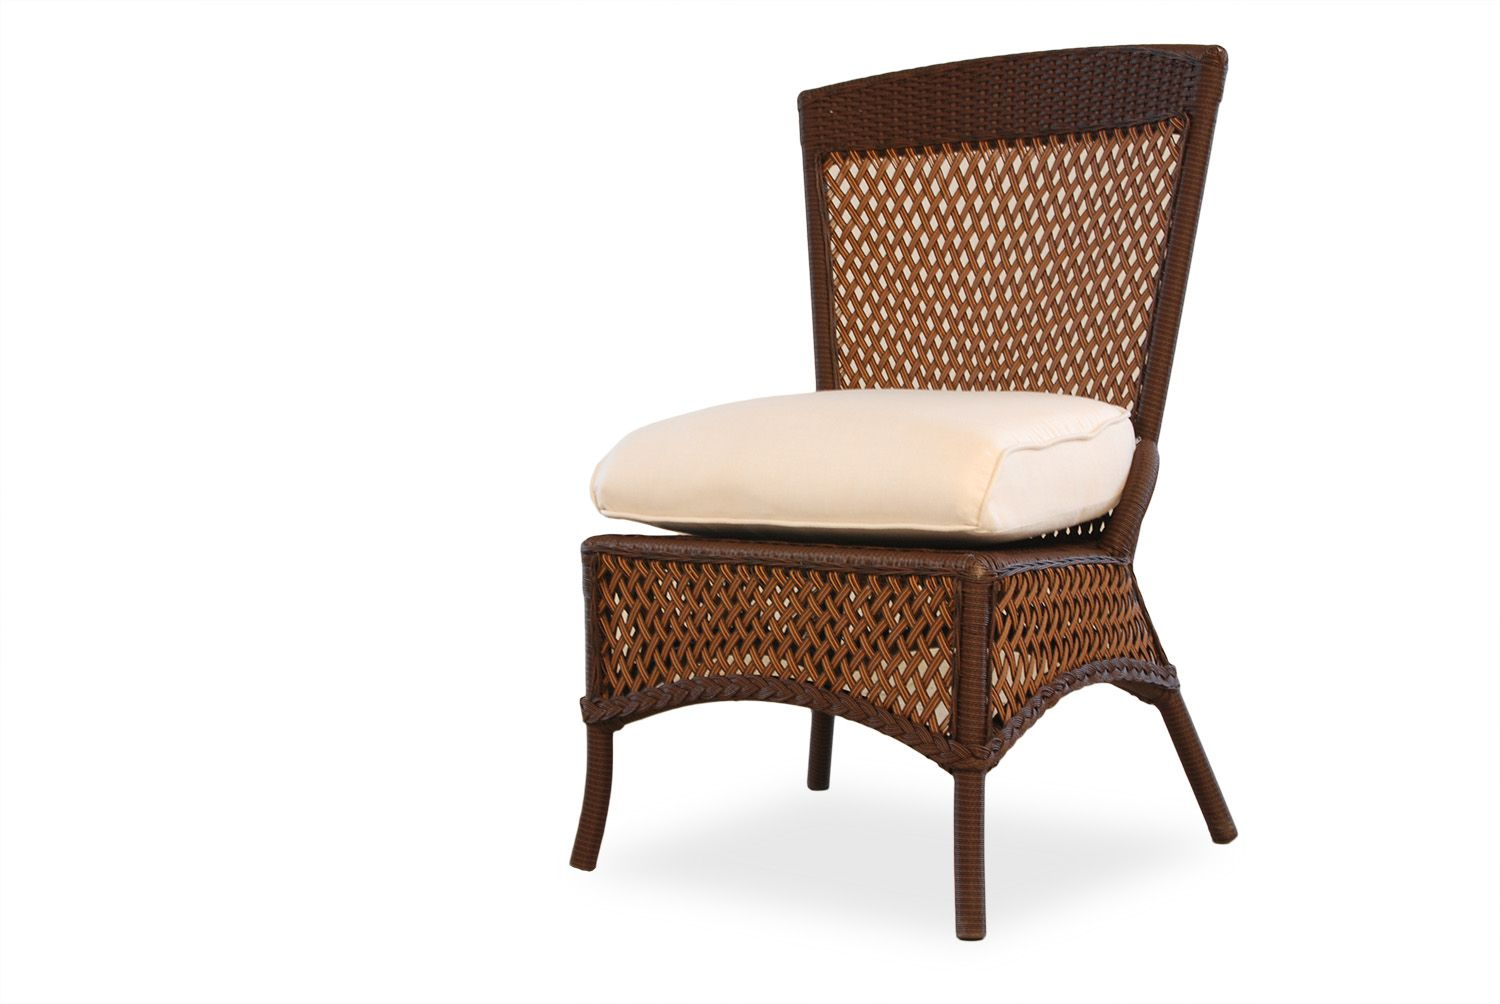 This grand #traverse style armless dining chair by #Lloyd #Flanders is truly a #chair you must own. Your family, friends, and even your deck will appreciate the style and comfort of this dining chair. Please comment if you love this #outdoor seating option! | Northern VA | Lawn & Leisure